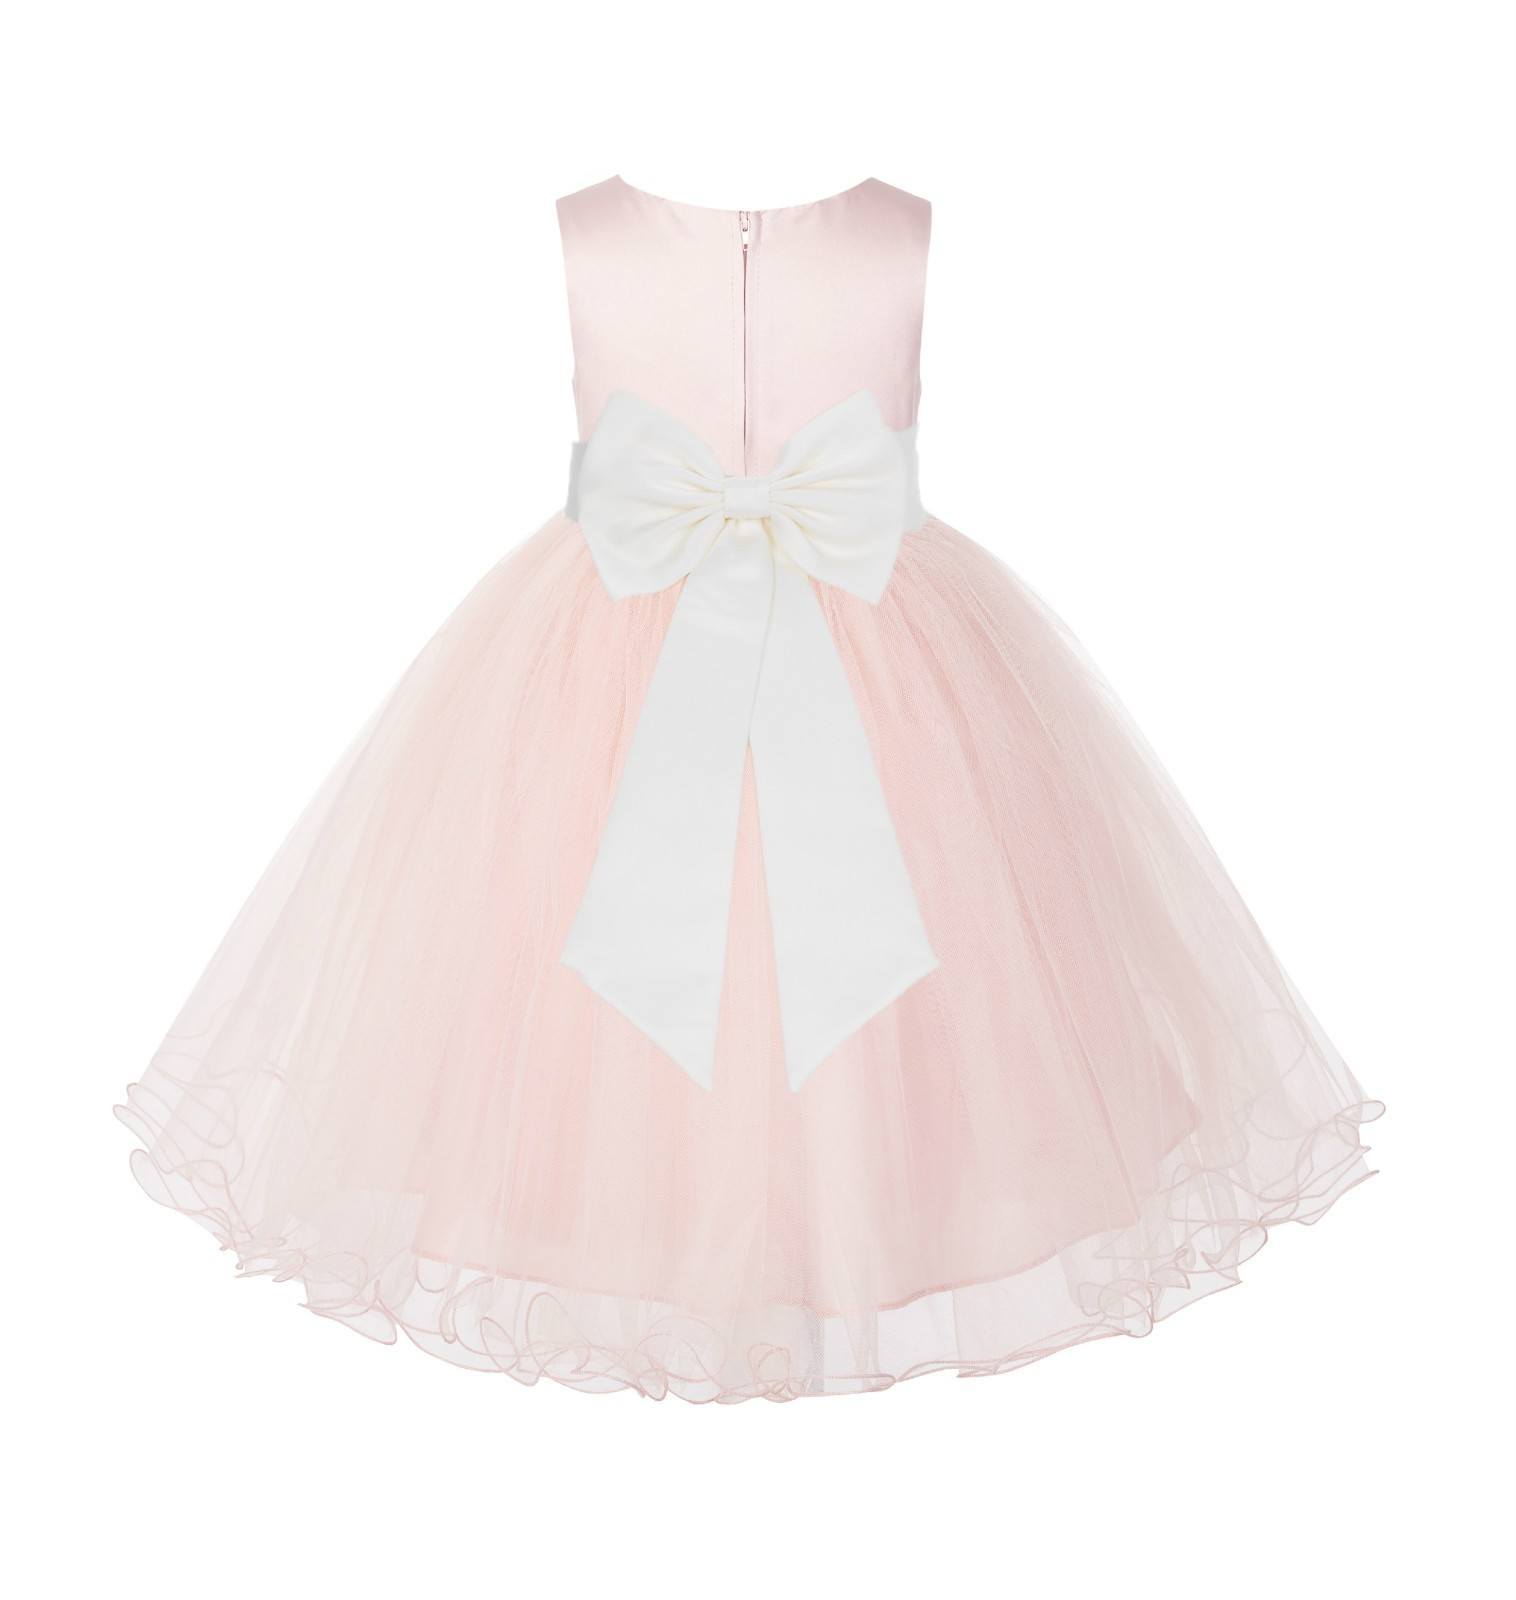 Blush PInk / Ivory Tulle Rattail Edge Flower Girl Dress Wedding Bridesmaid 829T